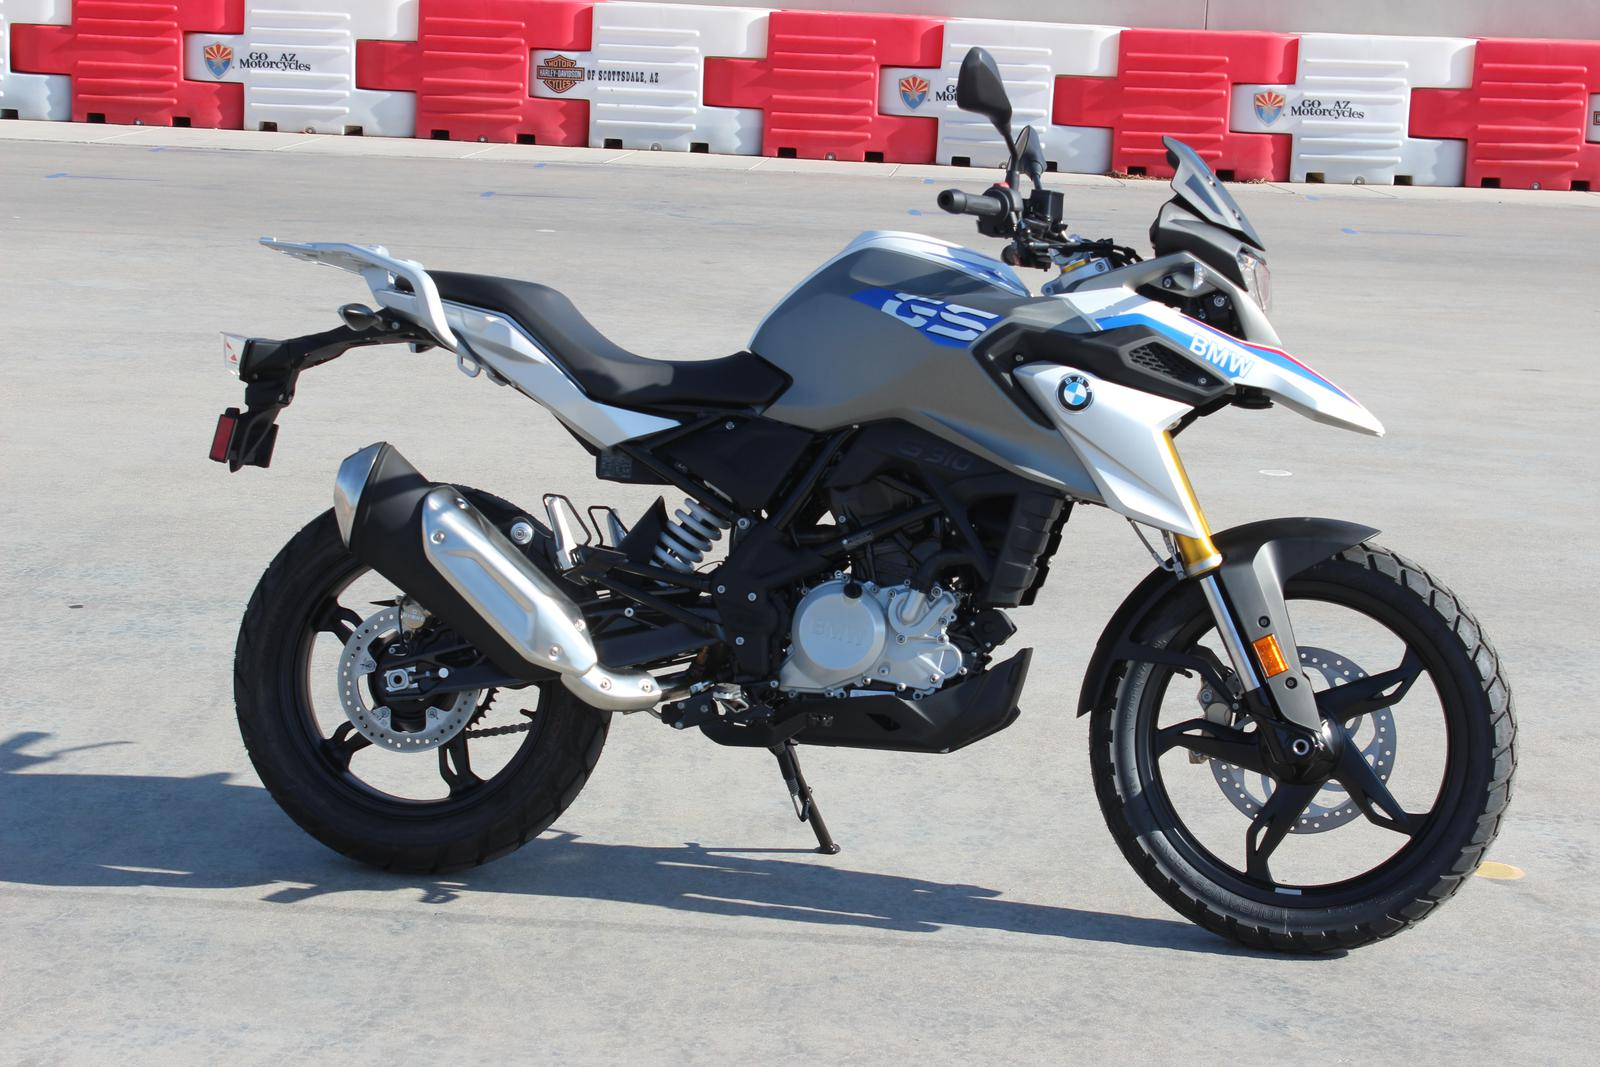 2018 Bmw G 310 Gs For Sale In Scottsdale Az Go Az Motorcycles In